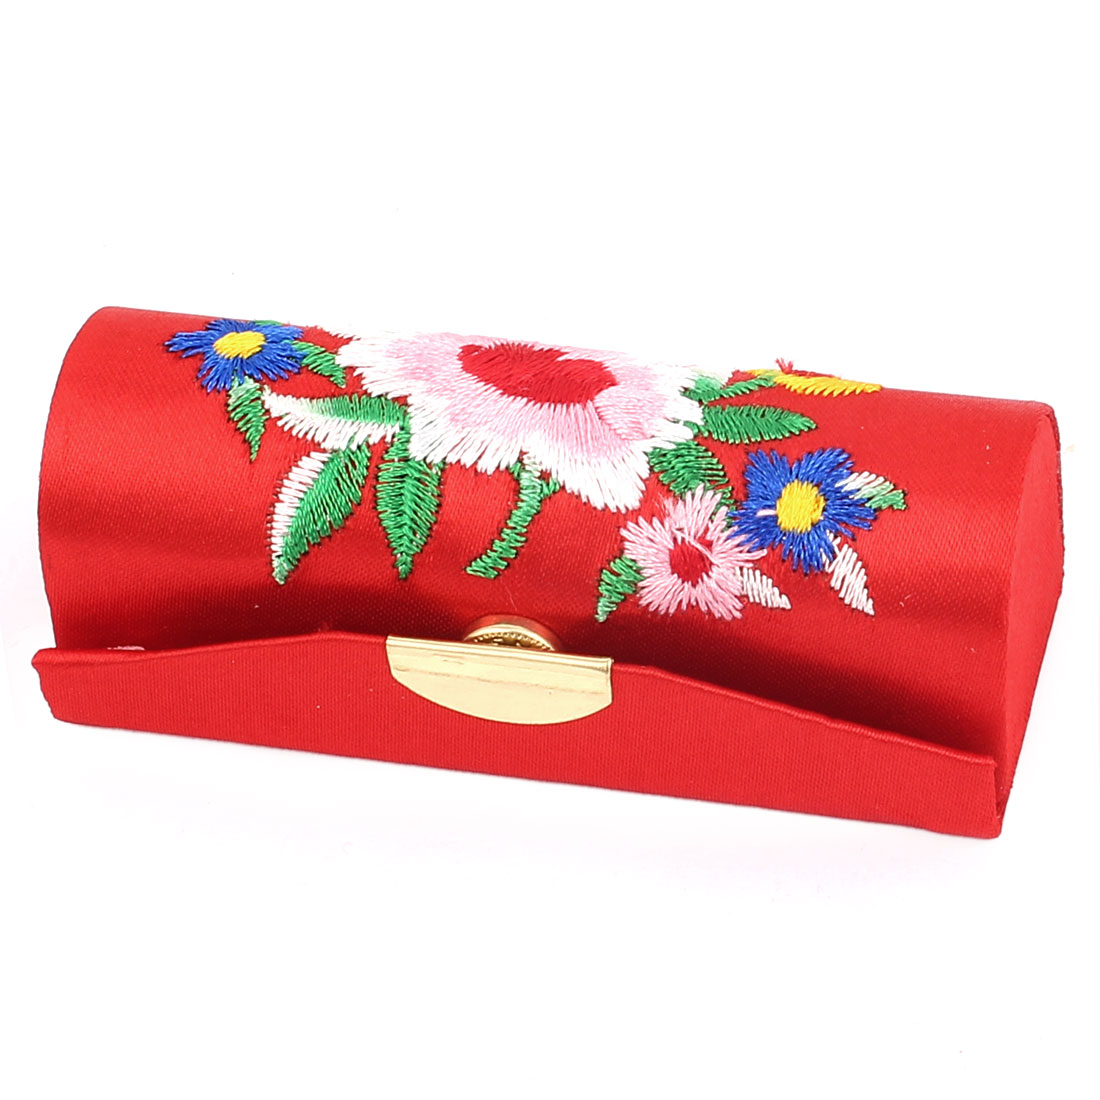 Women Floral Embroidery Press Stud Closure Lipstick Lip Balm Chap Stick Case Box Holder Red